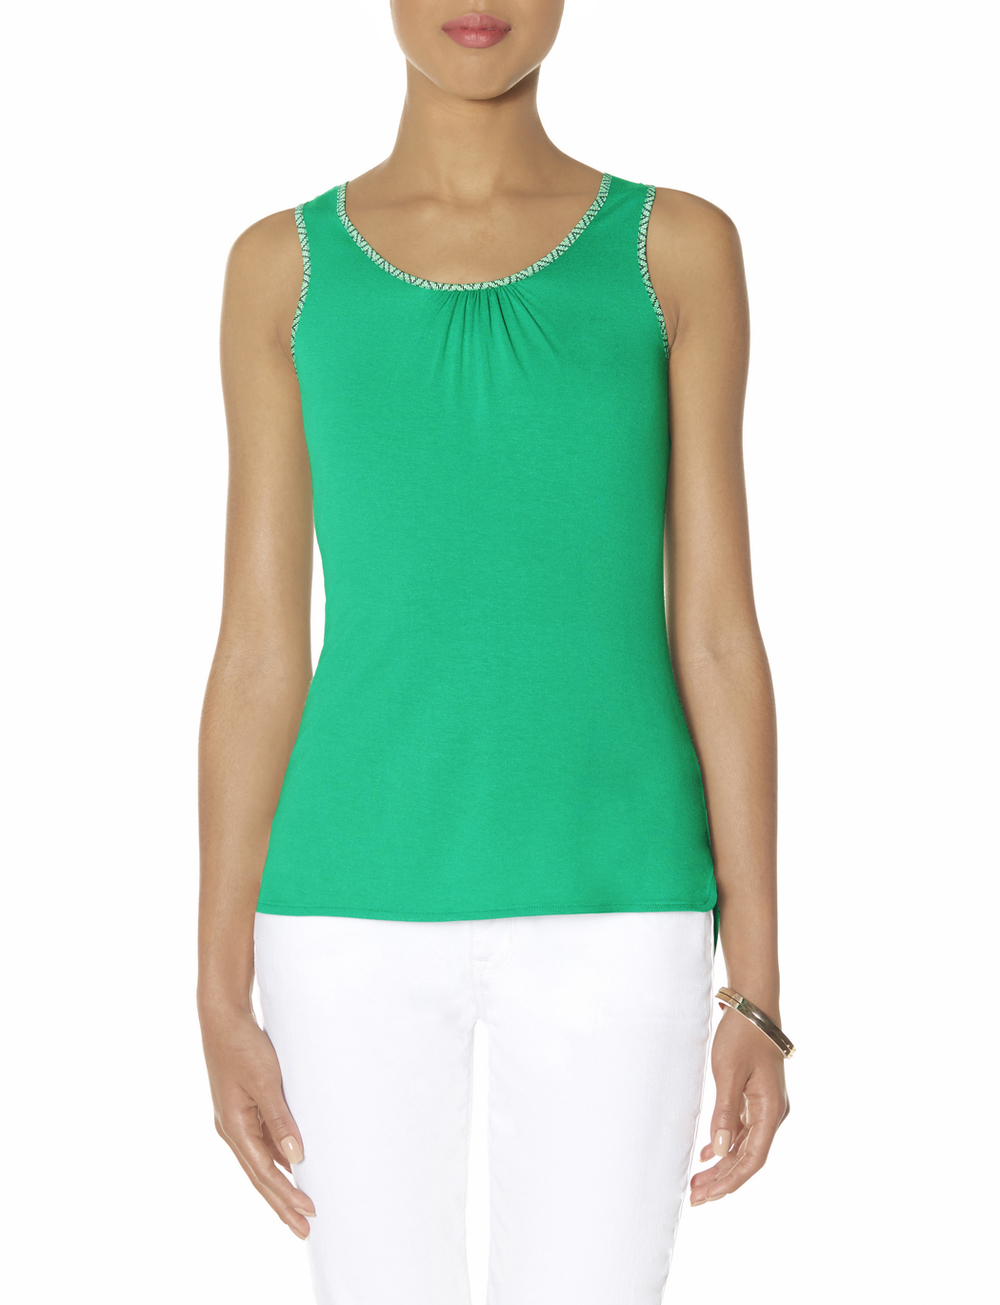 Trimmed High low tank. Available in green, peach, grey. Was: $24.95. Today: $14.97.